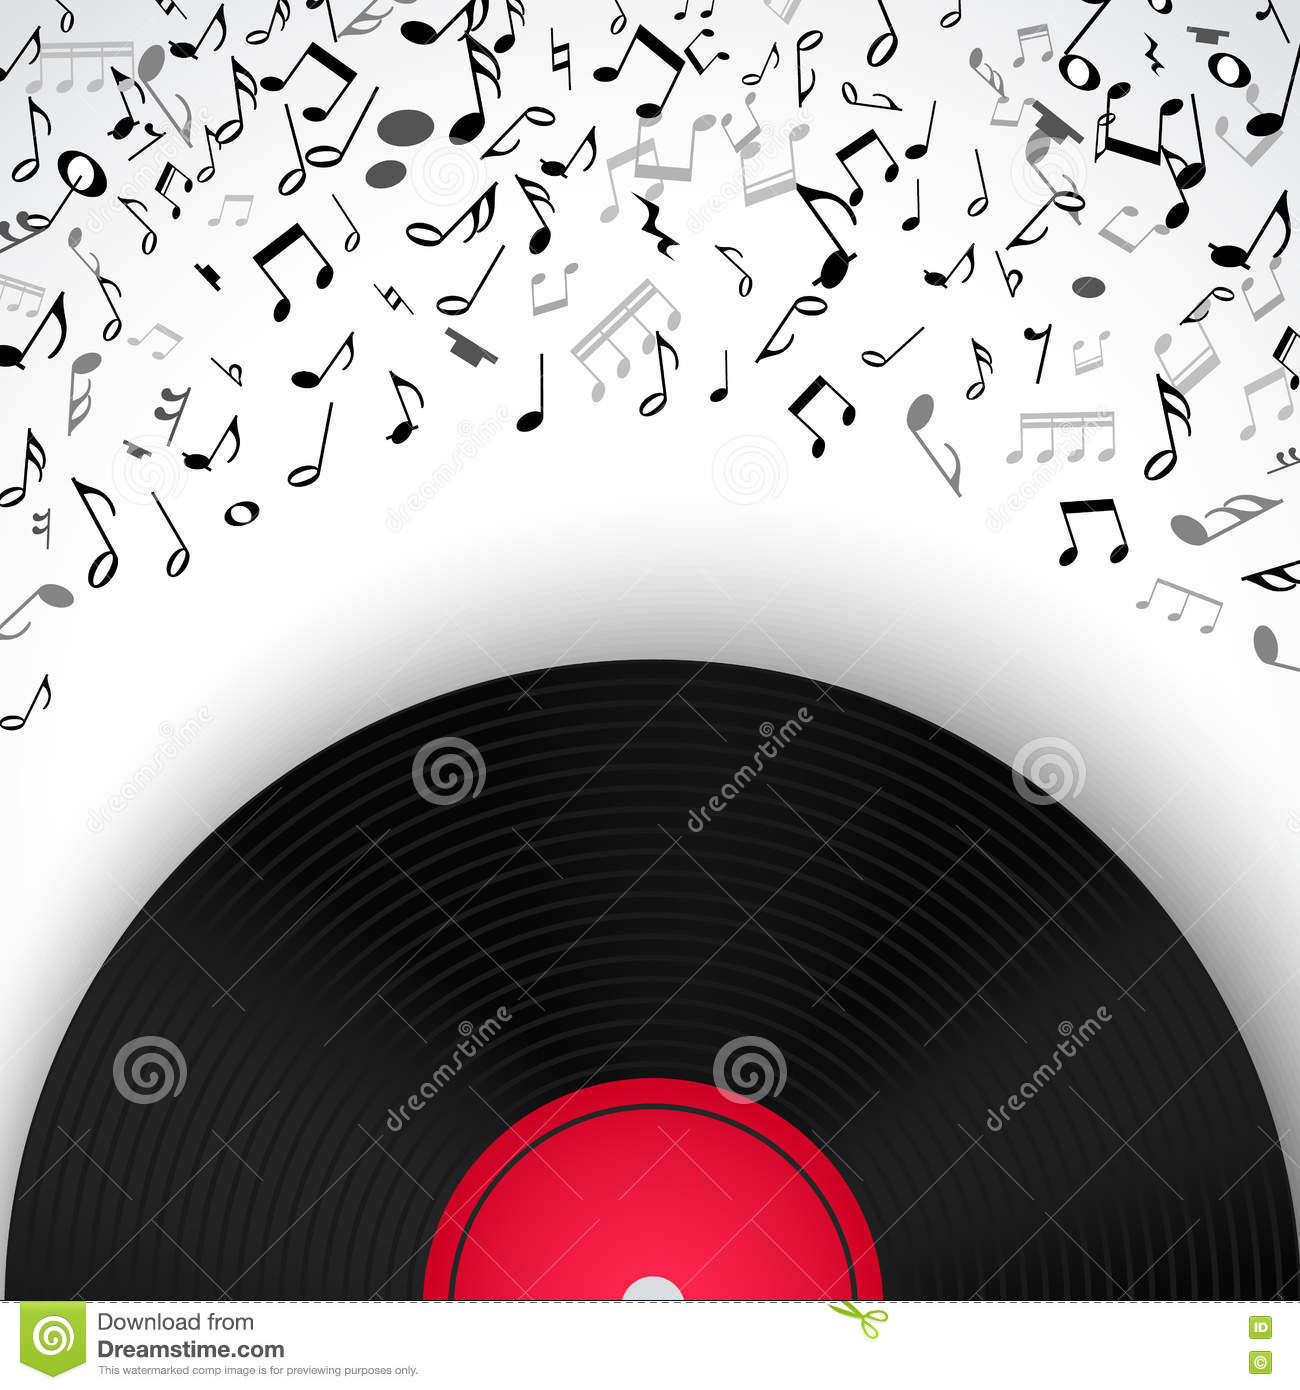 Abstract Musical Frame And Border With Black Notes On White ...